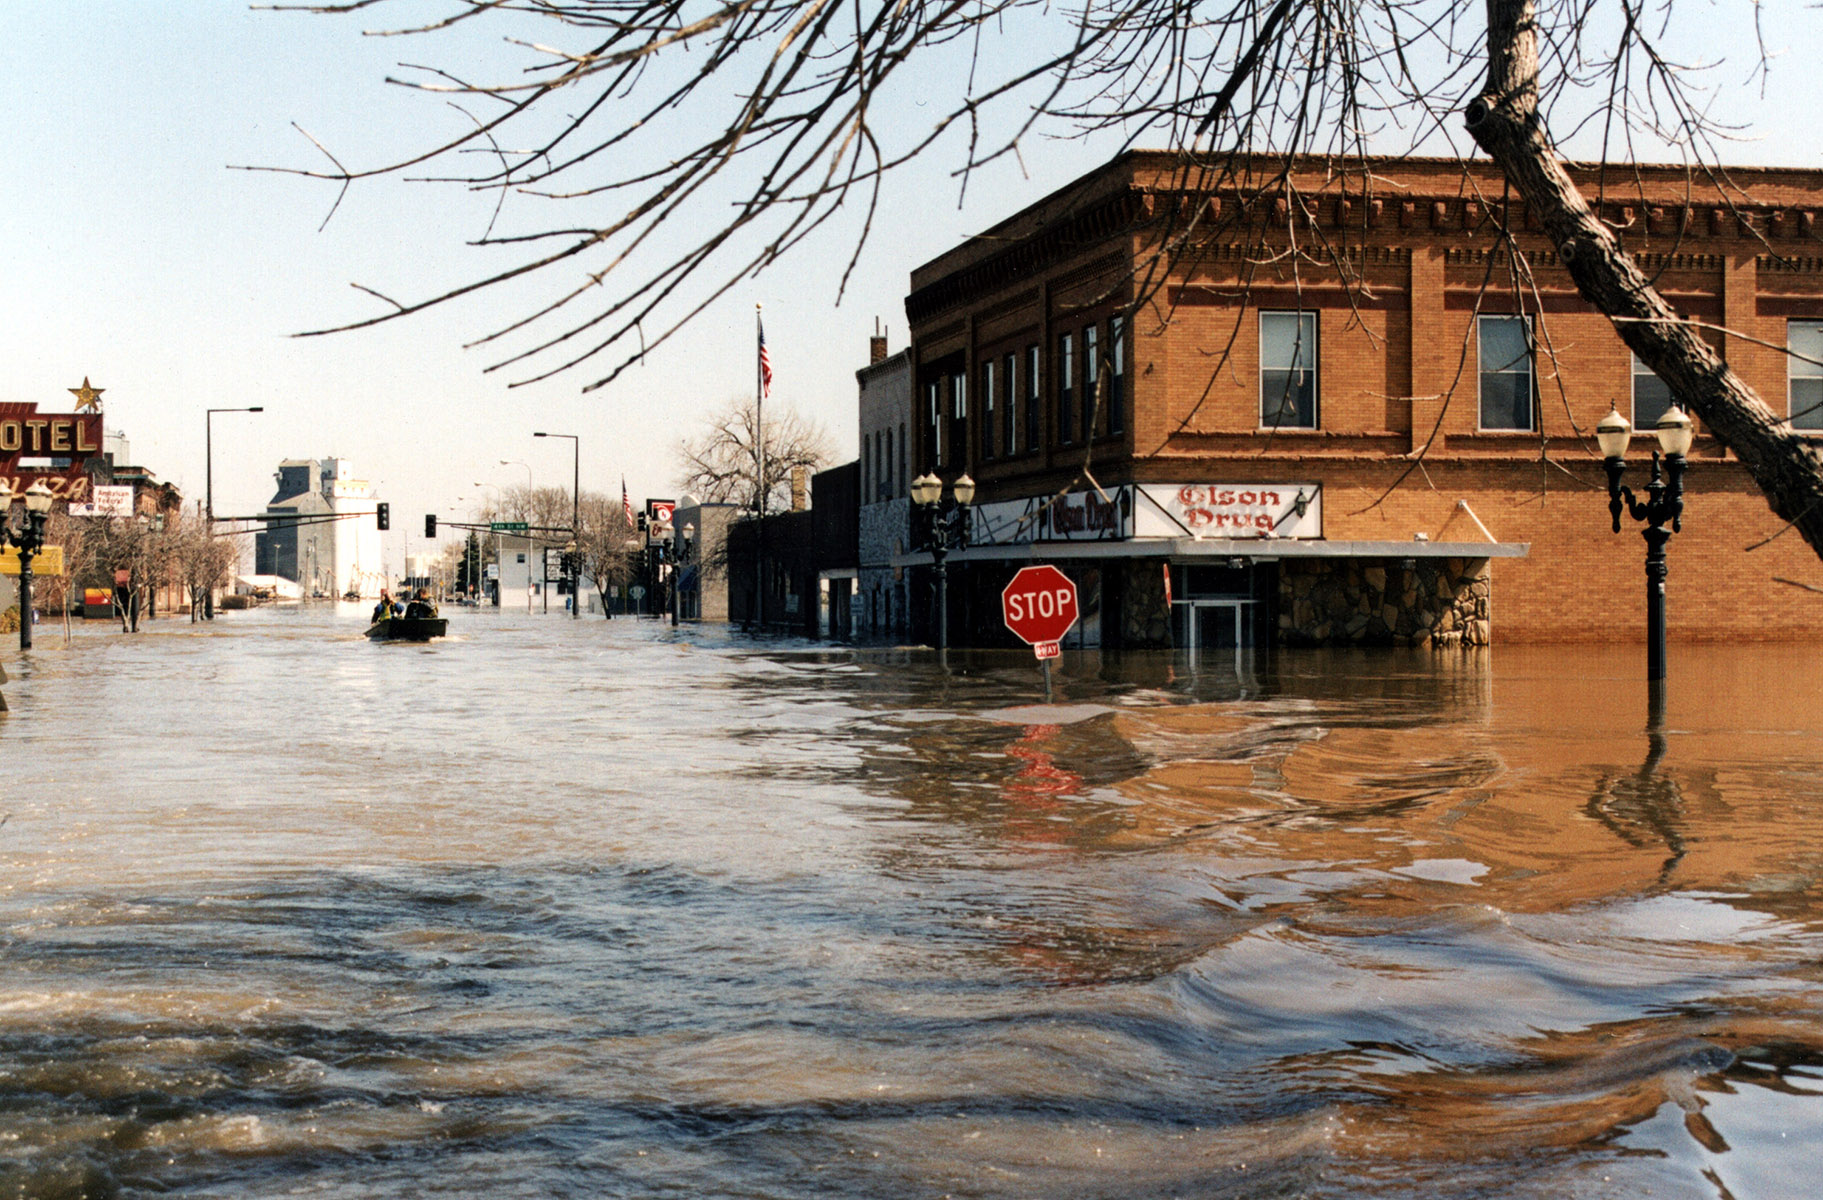 Fema Flood Insurance Quote Fema Reports Progress With Flood Insurance Changes